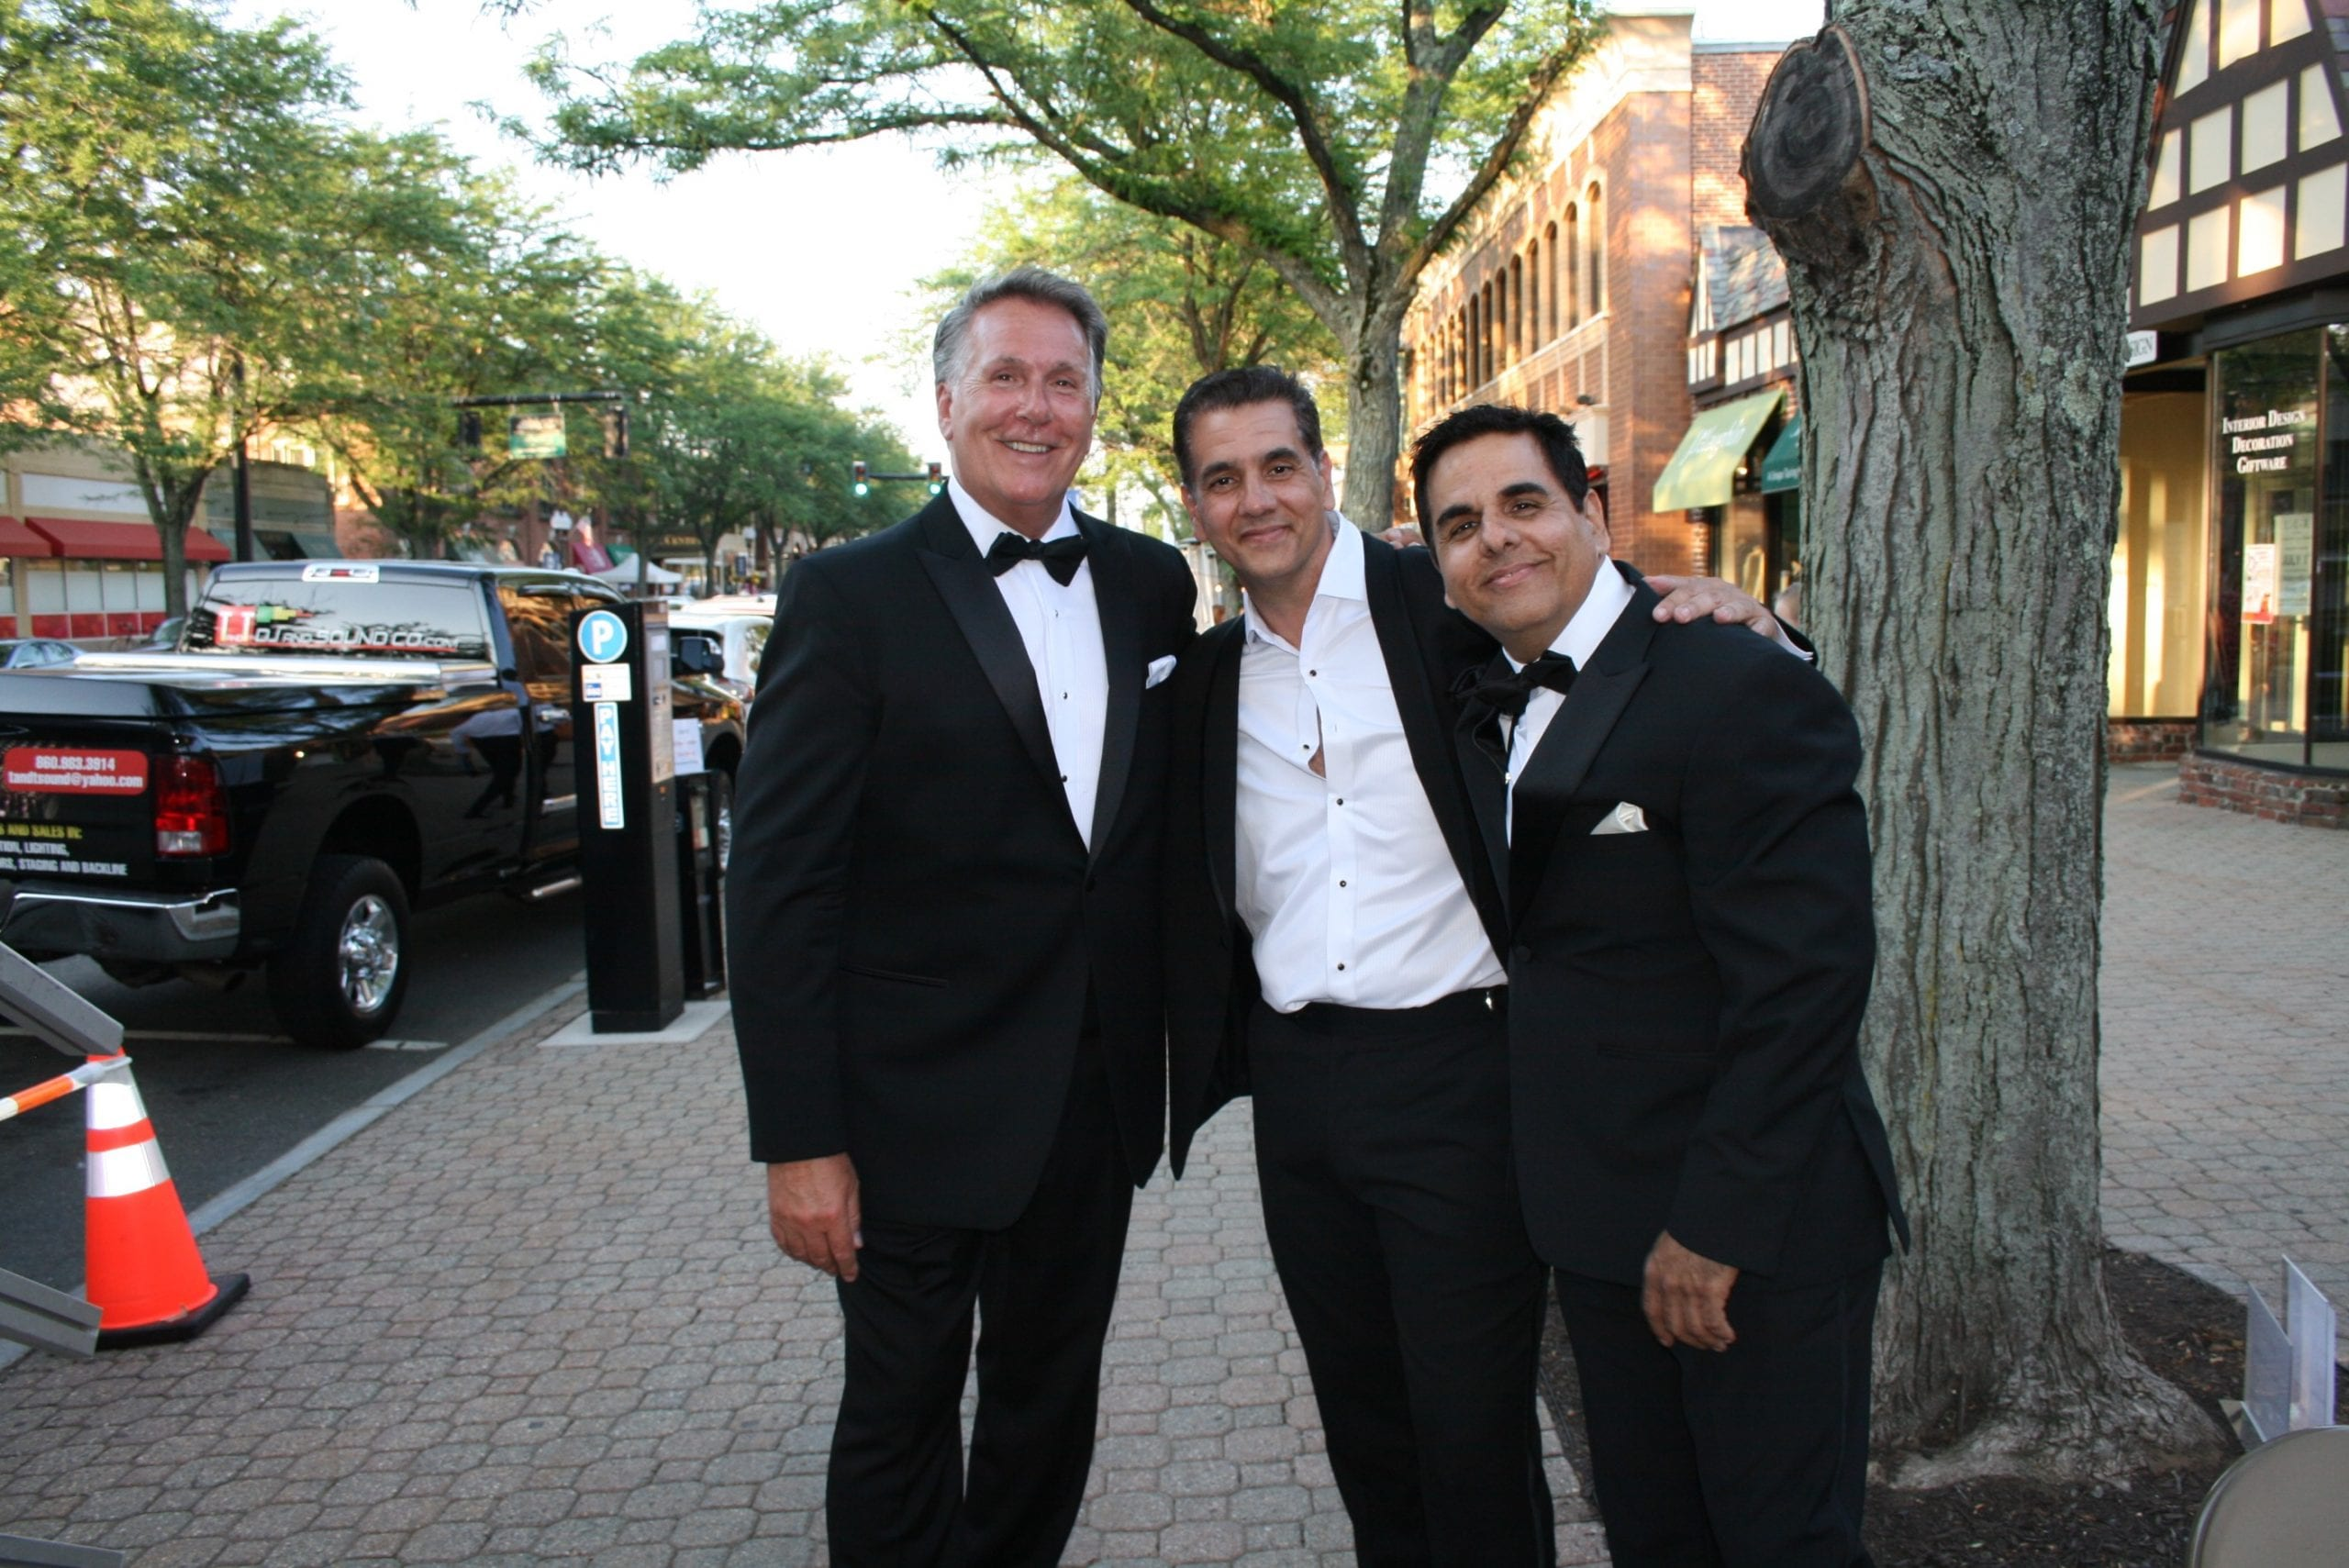 Co-hosts Tom Hickey, Ody Sosa and Oscar Sosa at the Fashion Show in West Hartford Center on the Town of West Hartford Showmobile stage on June 23, 2016. Photo credit: Joy Taylor